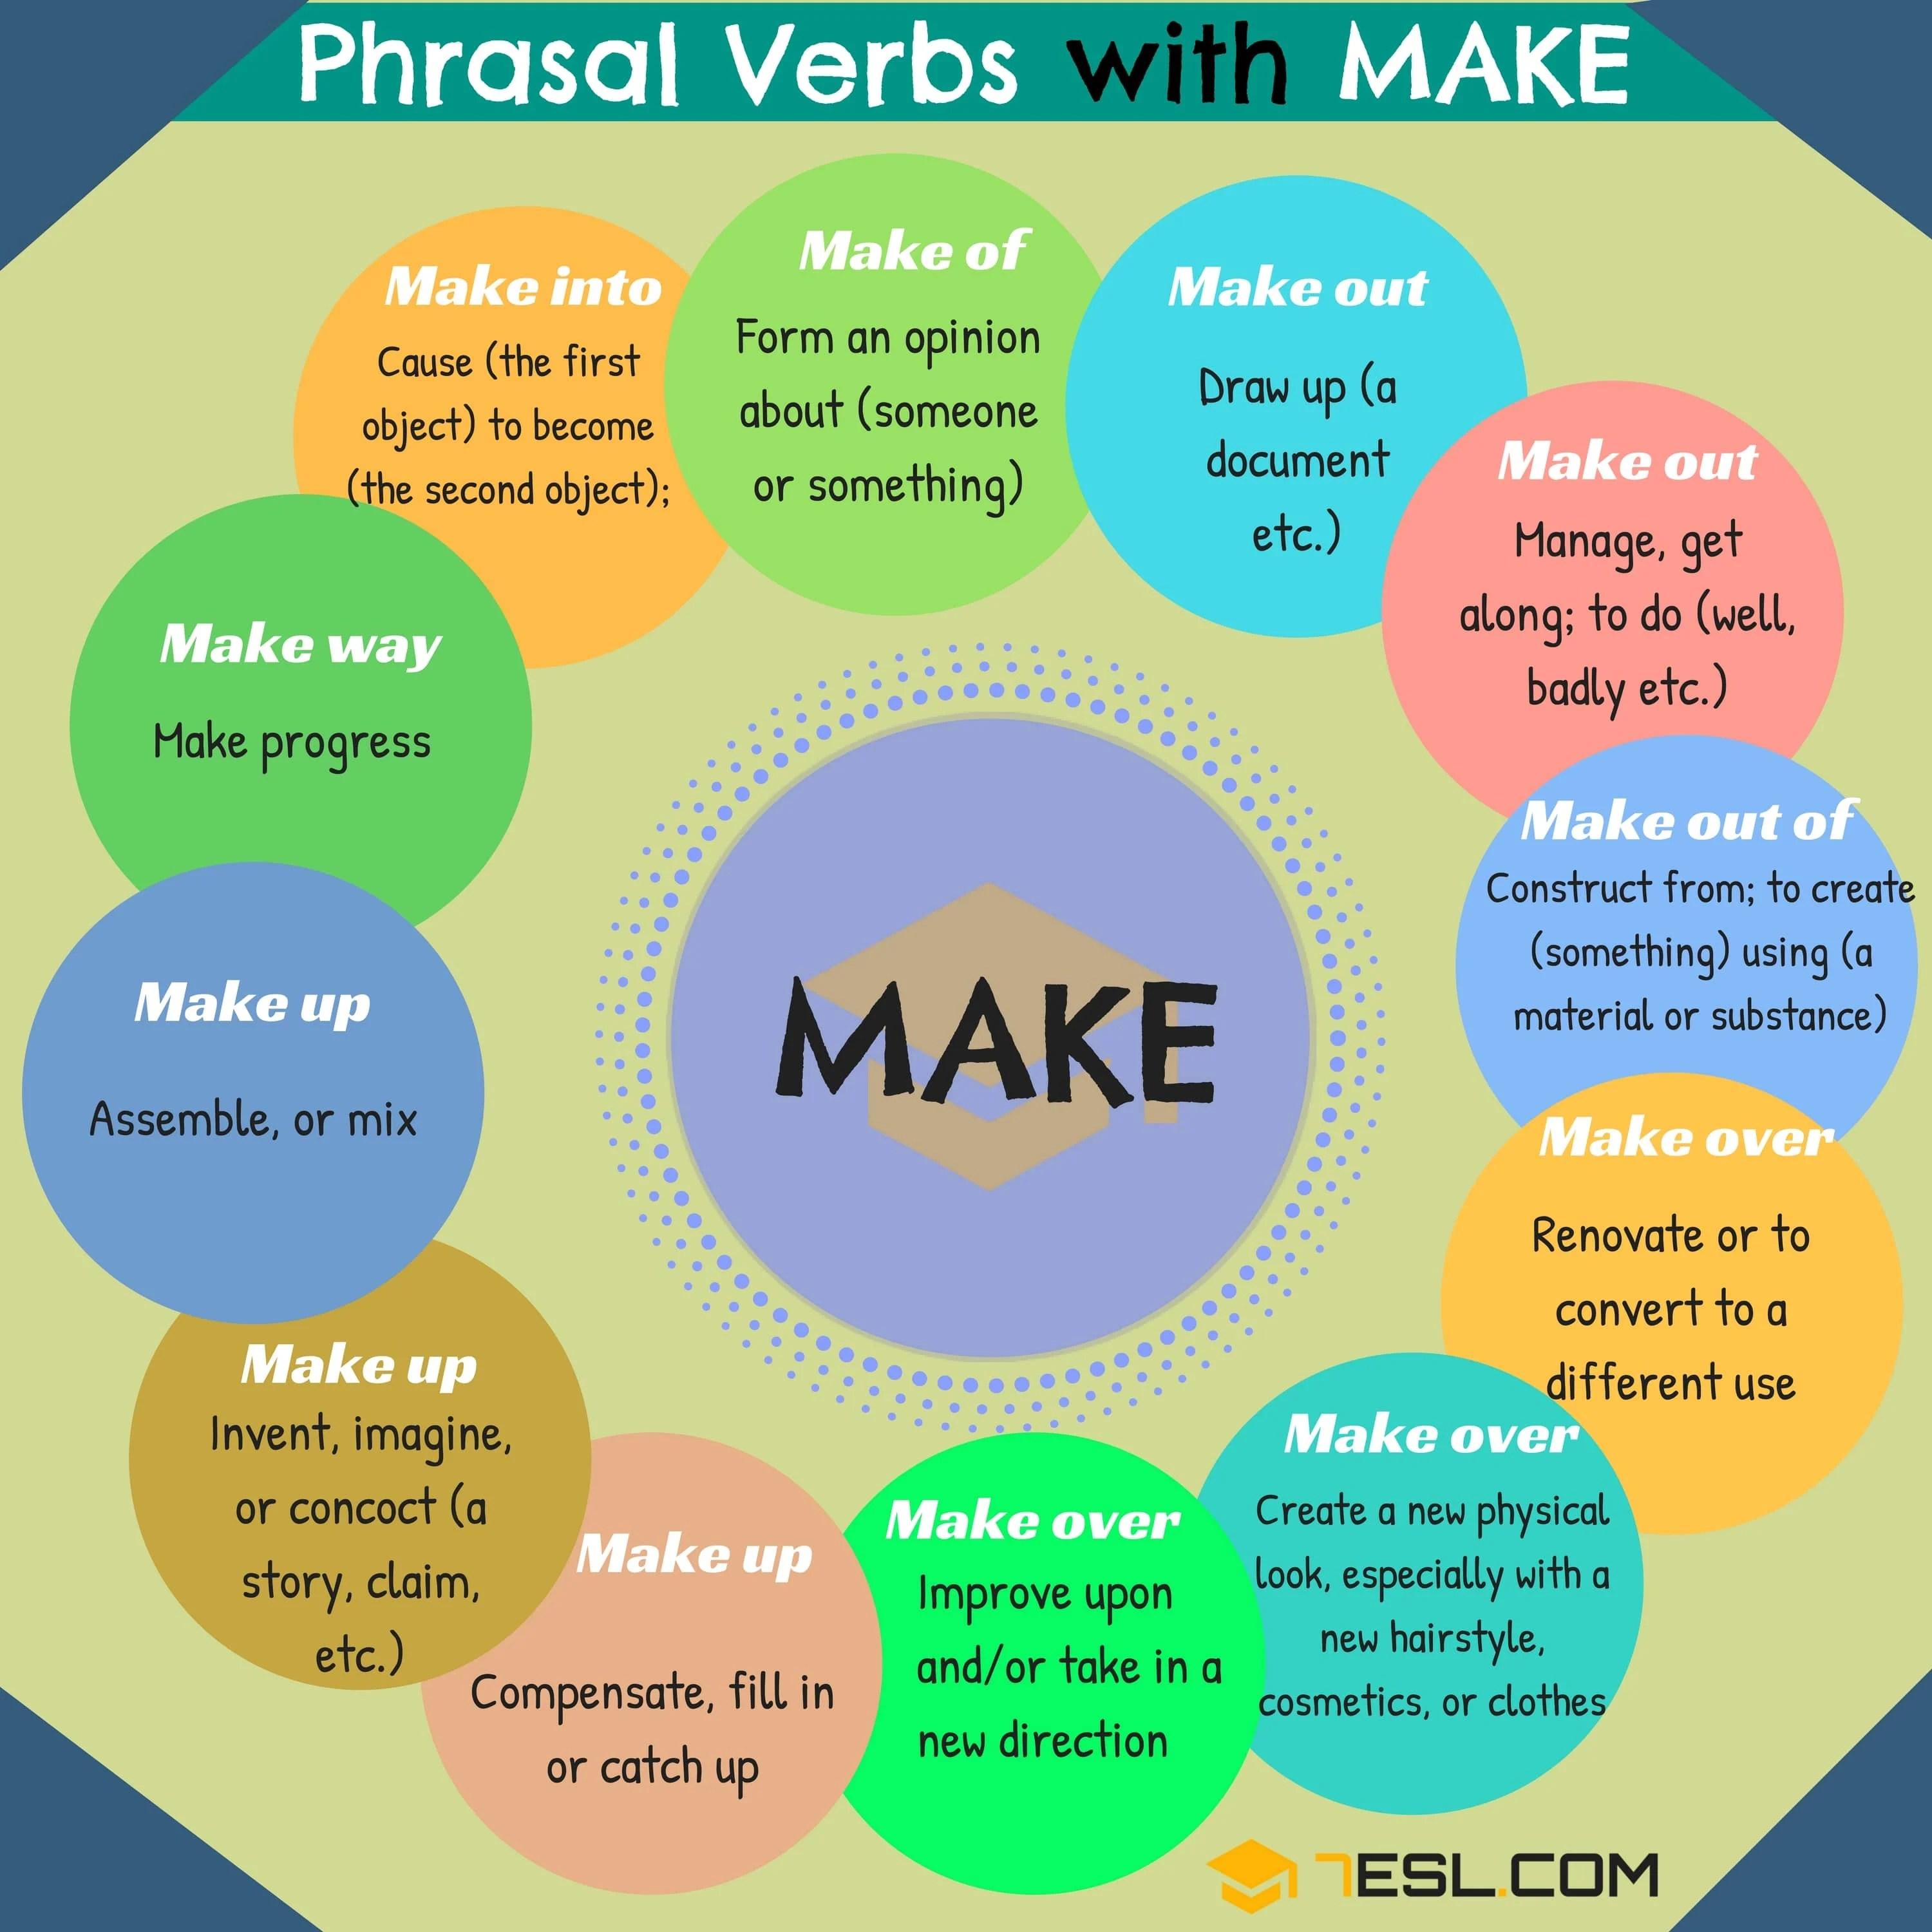 Phrasal Verbs with MAKE